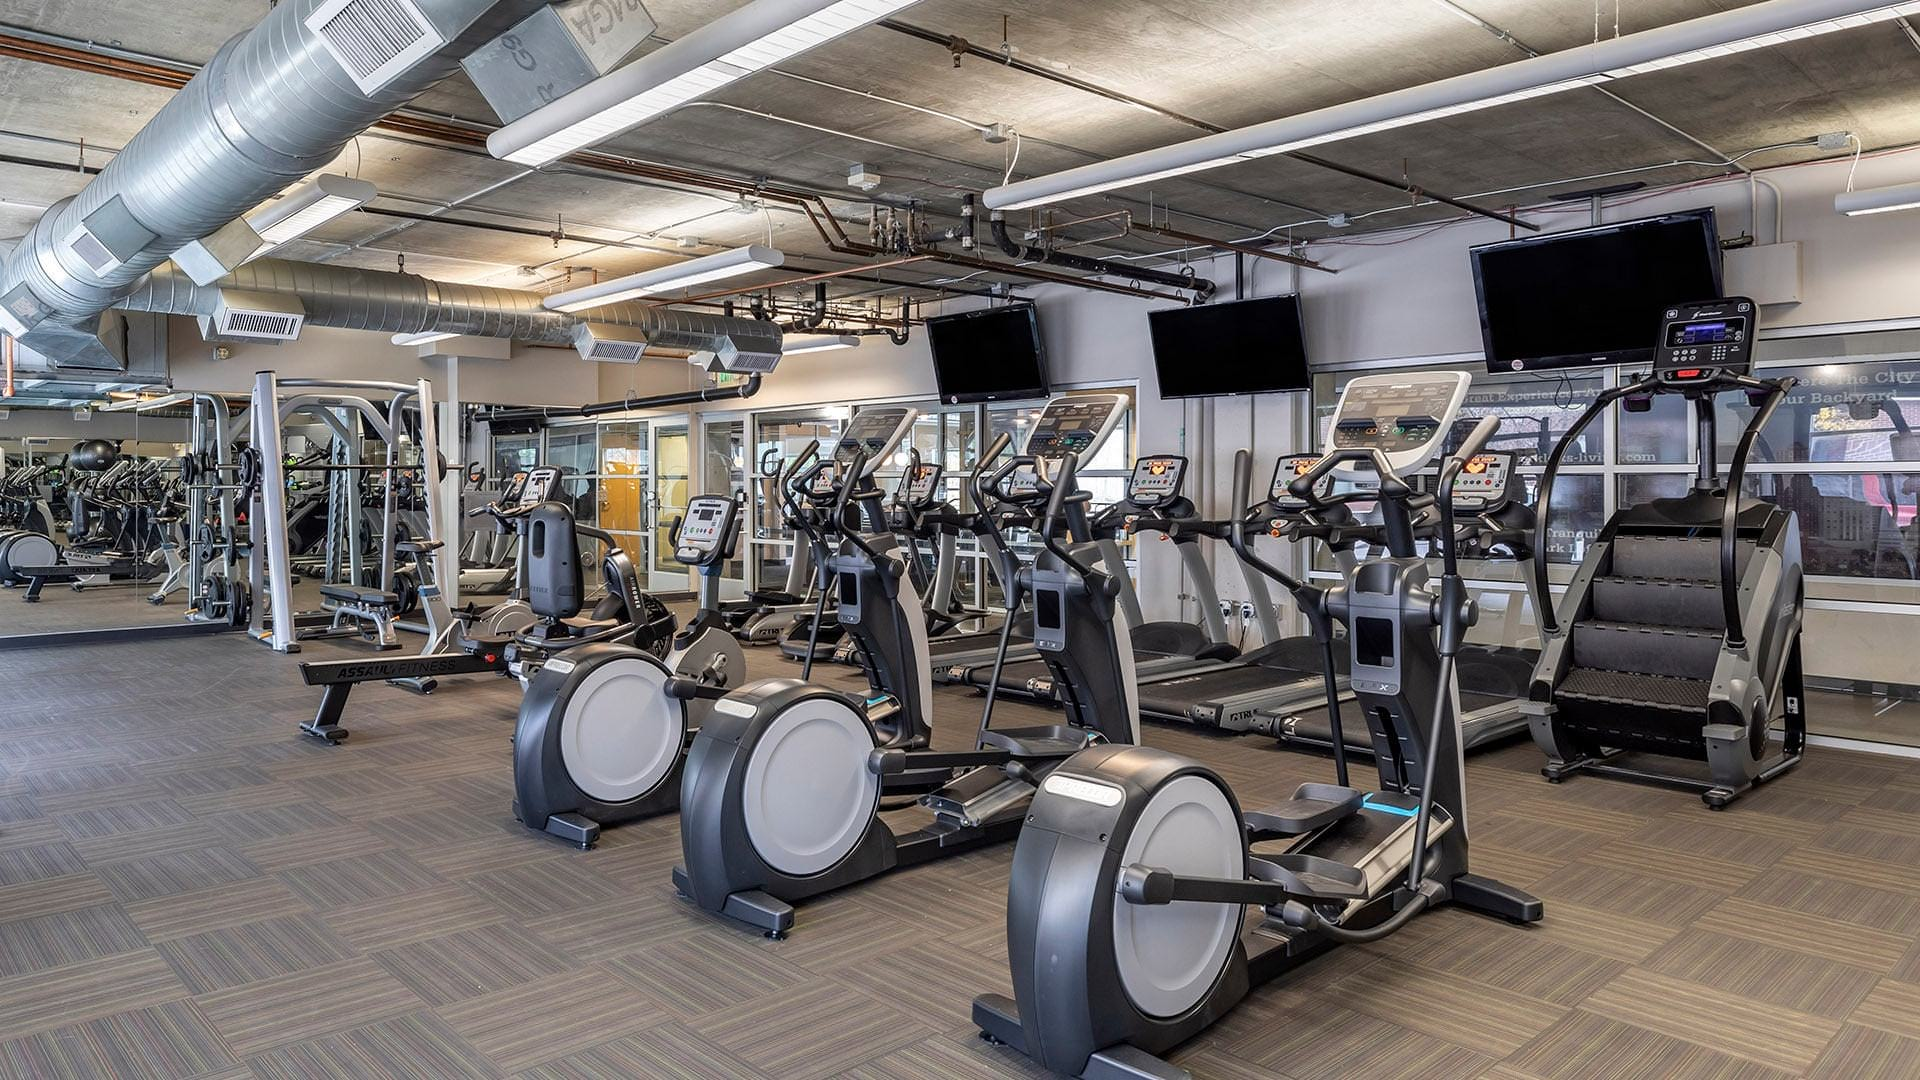 cardio machines face mounted tvs in well lit fitness center